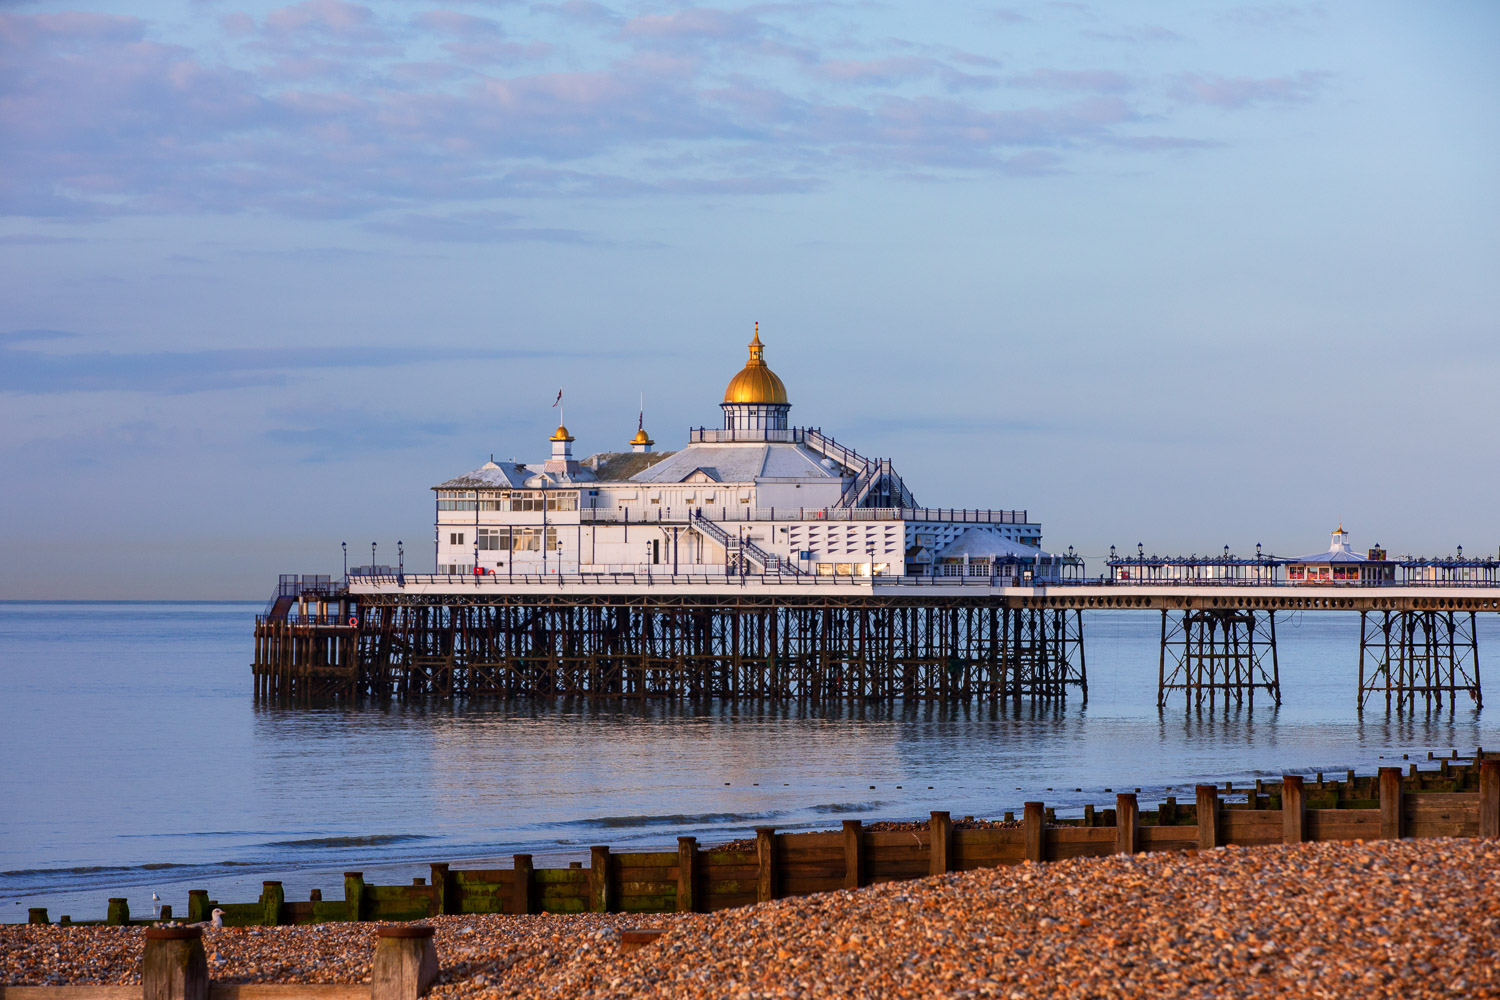 Eastbourne Pier looking lie a confection in a soft morning light. The Victorian-era fun pier was opened  1870 and designed by Eugenius Birch